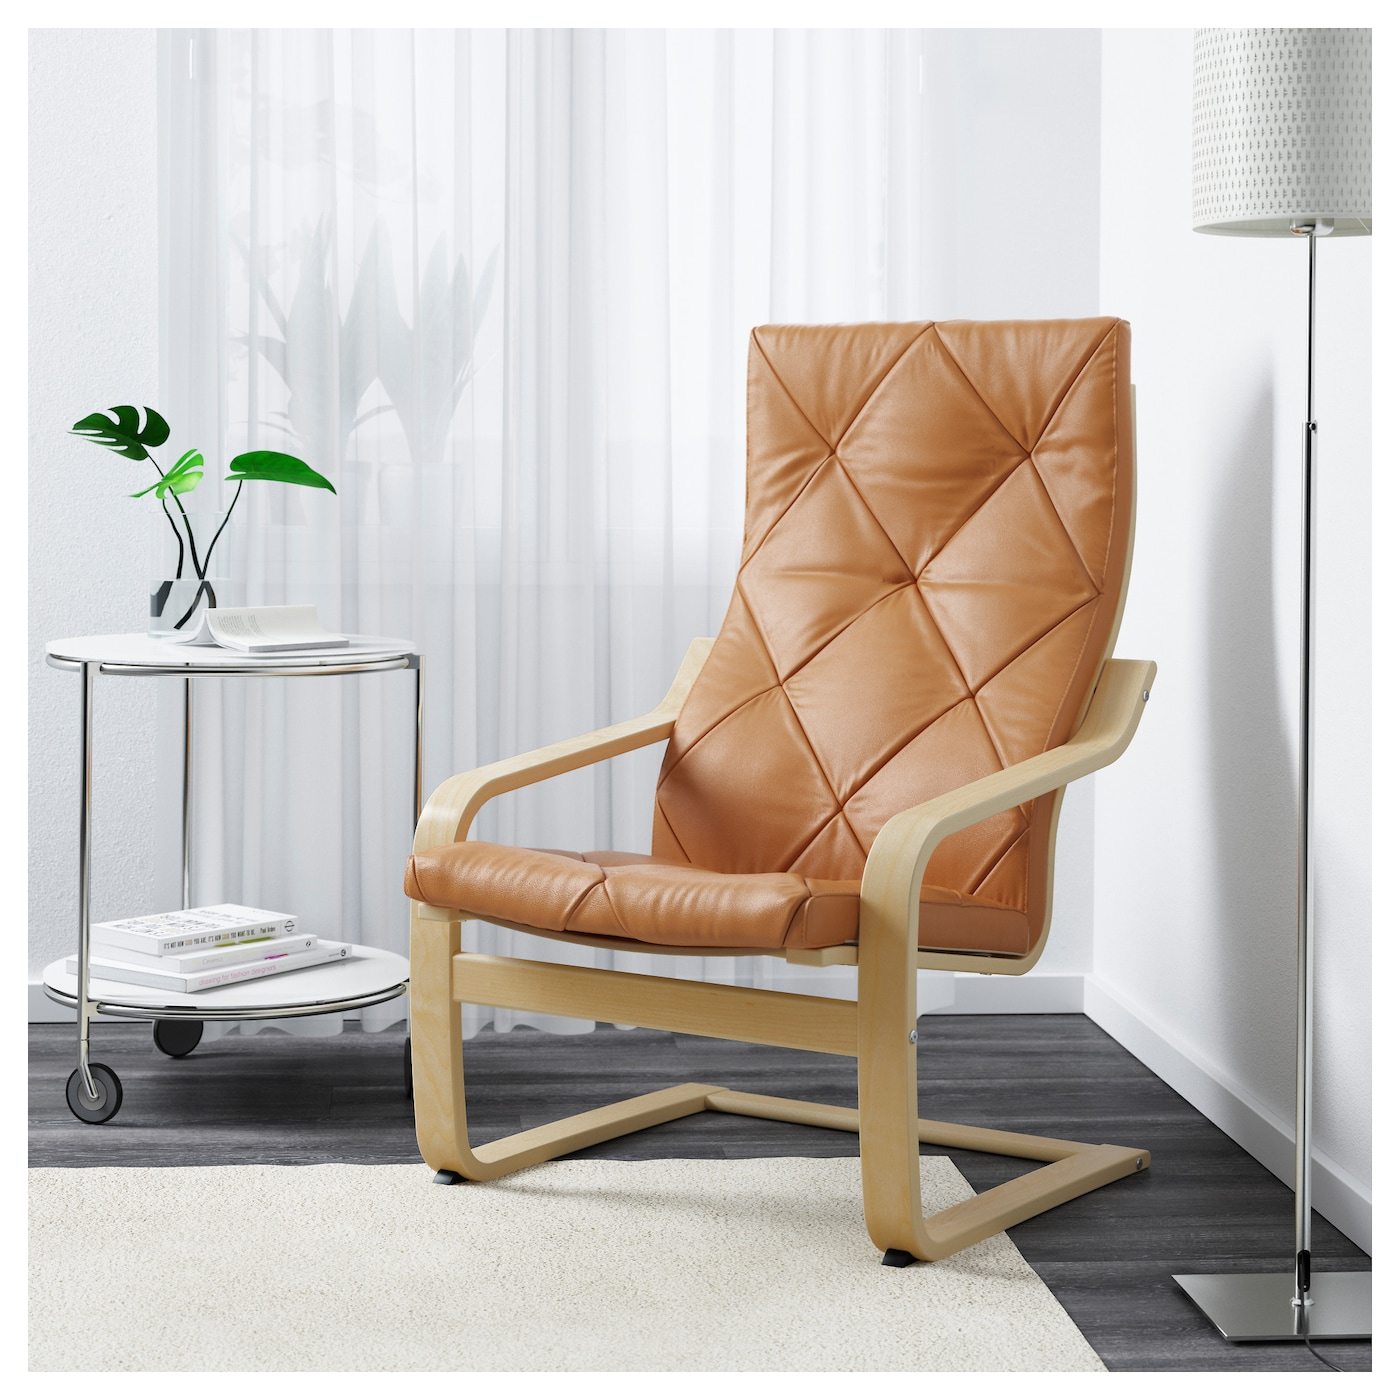 IKEA POÄNG armchair Layer-glued bent birch frame gives comfortable resilience.